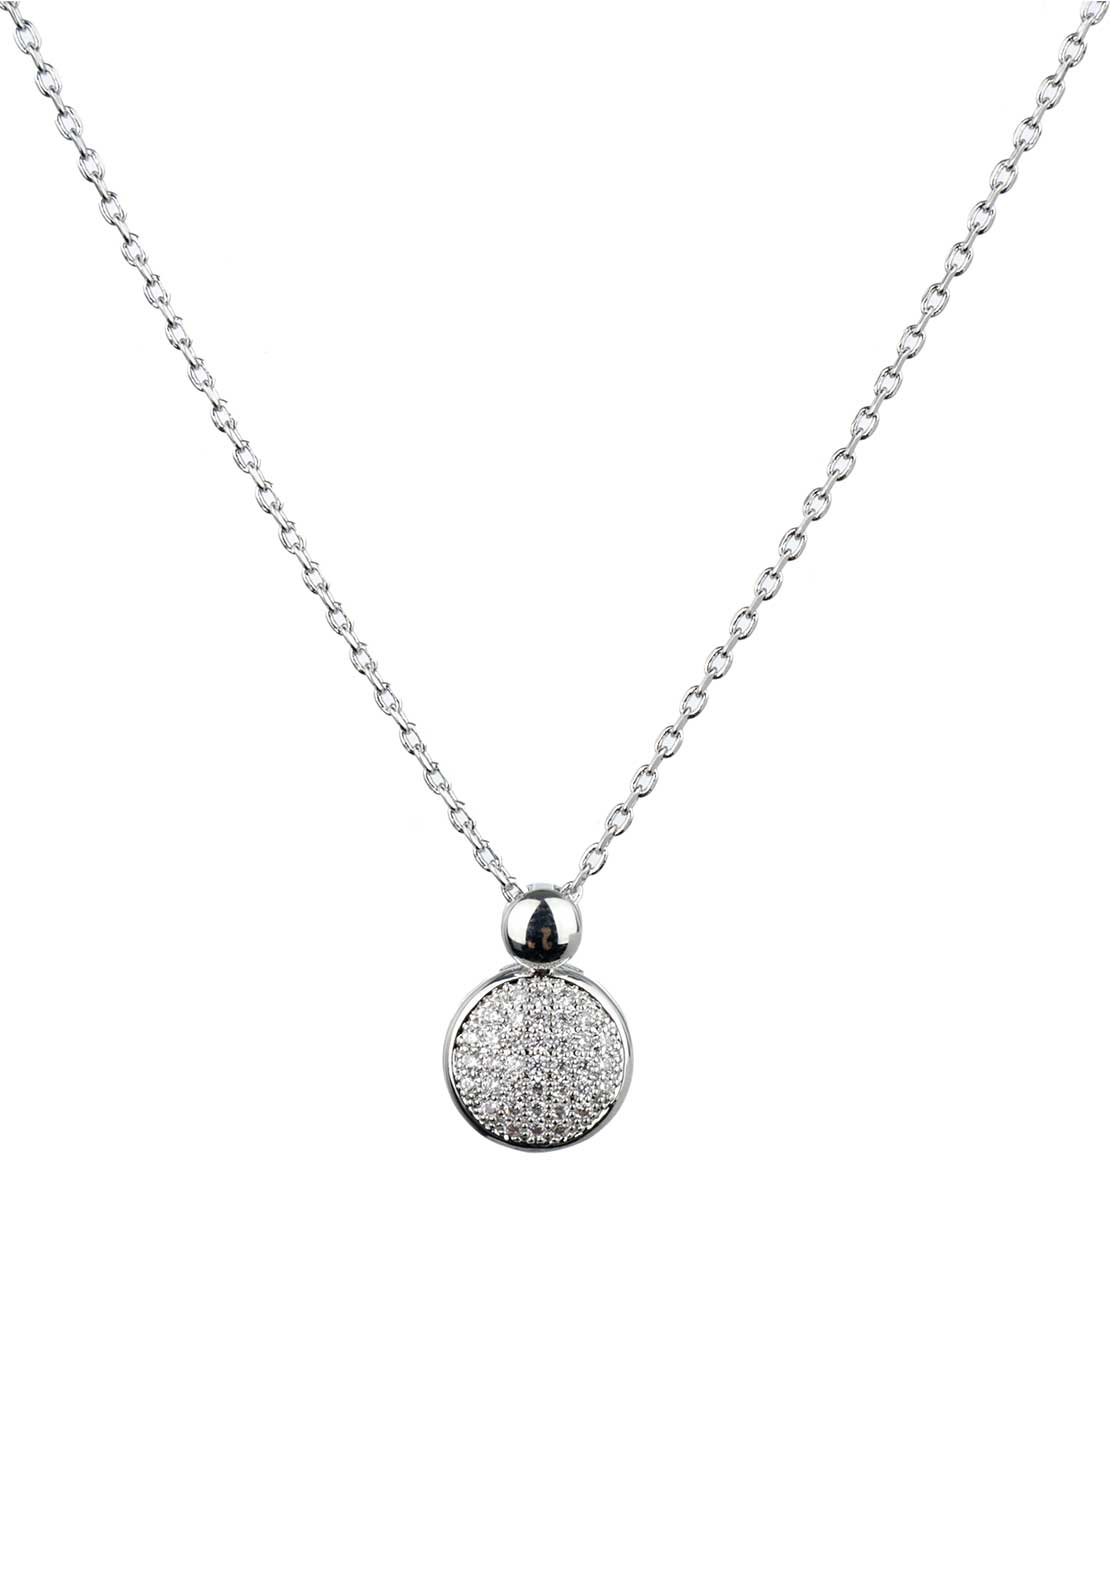 Absolute Jewellery Girls Pave Studded Pendant Necklace, Silver